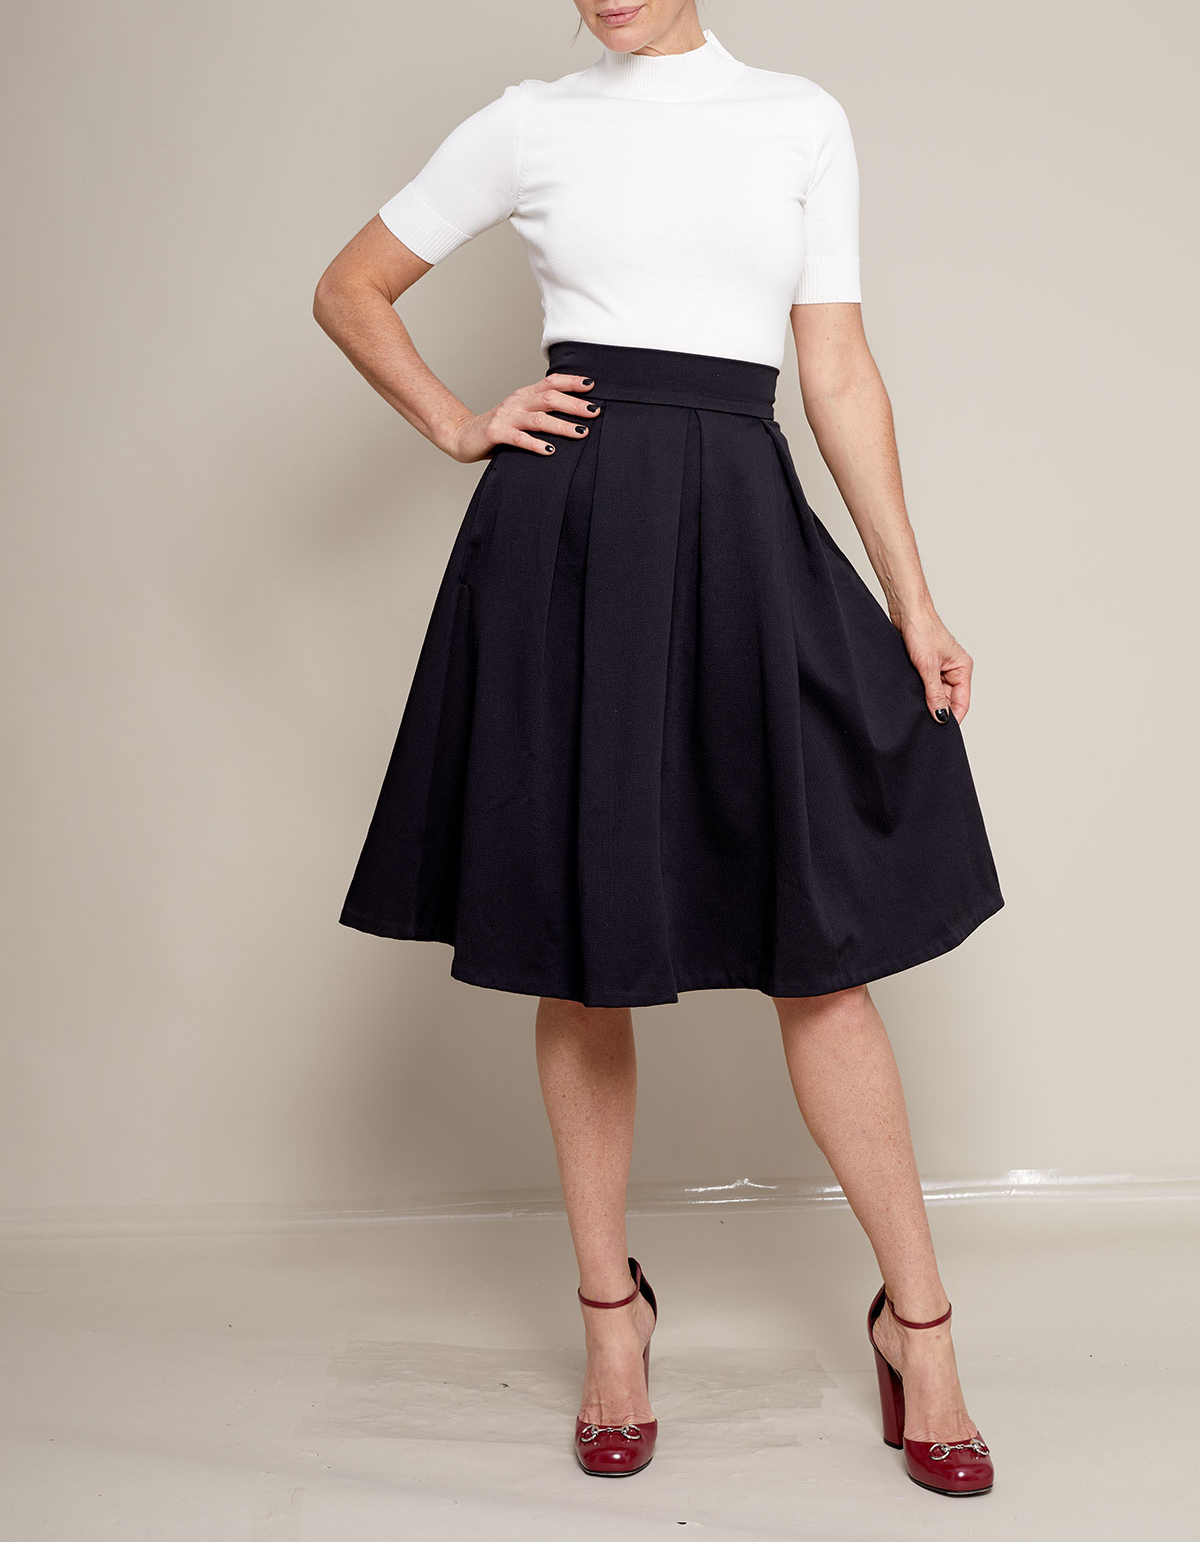 Just Patterns Stephanie Skirt 3.jpg